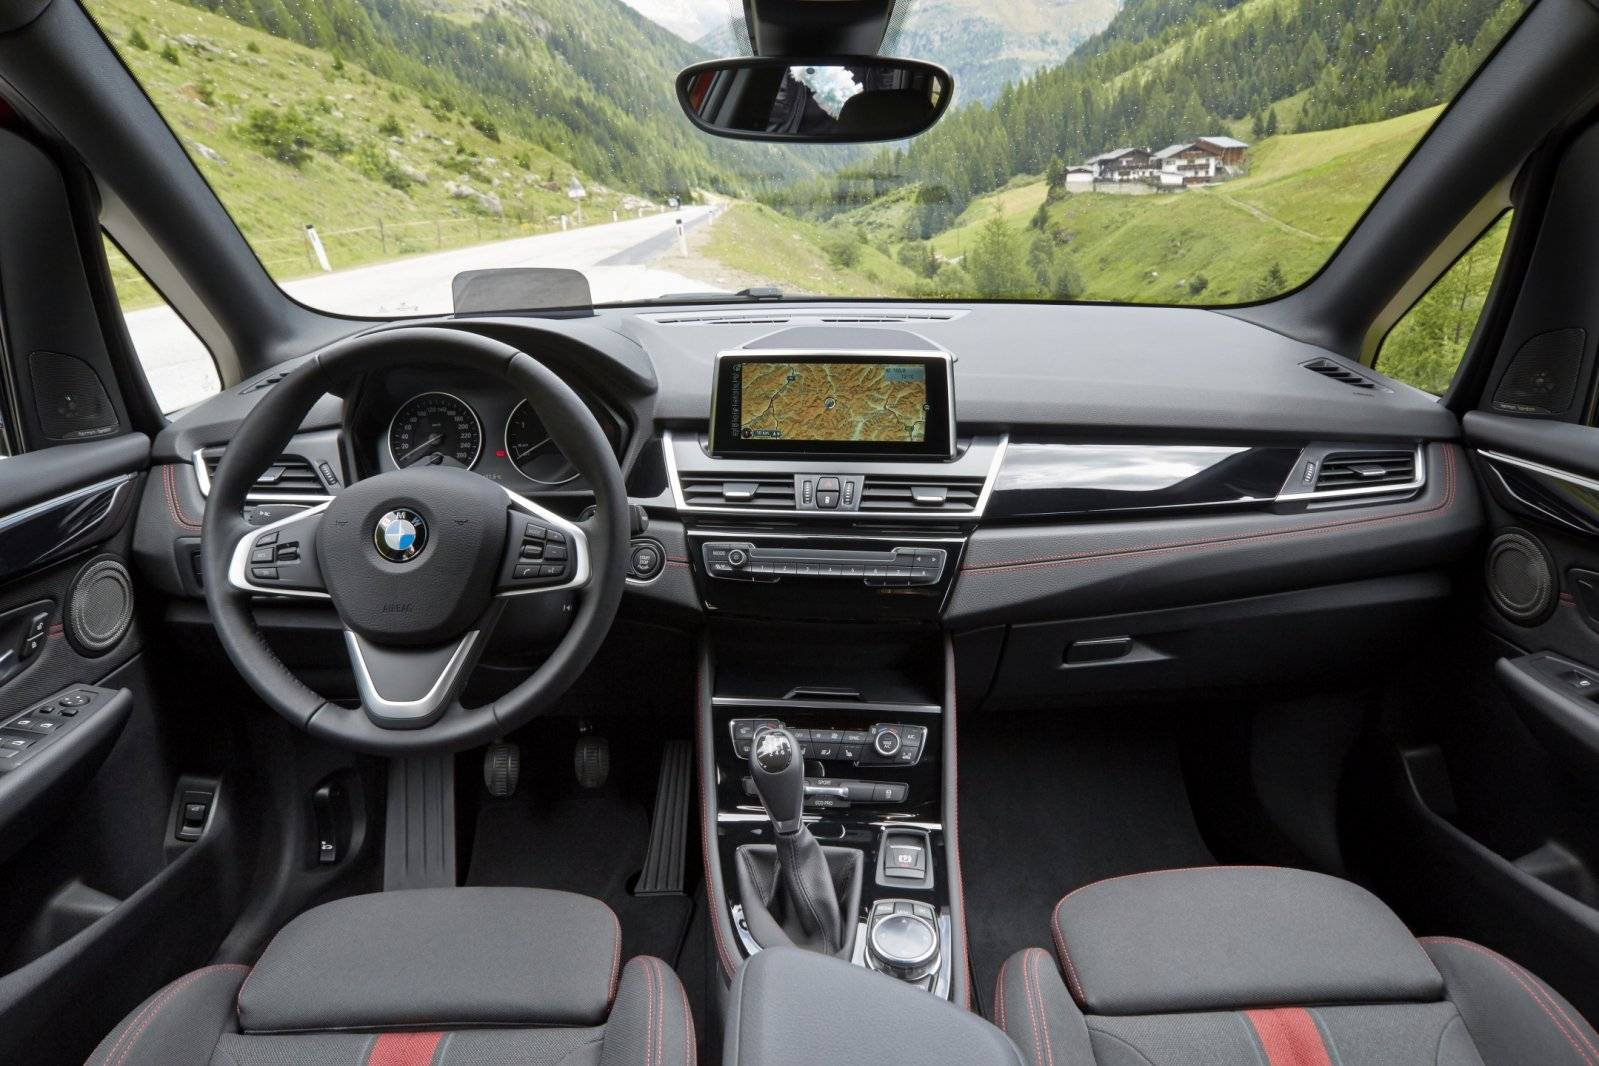 test autotest bmw 2 serie active tourer autotests. Black Bedroom Furniture Sets. Home Design Ideas